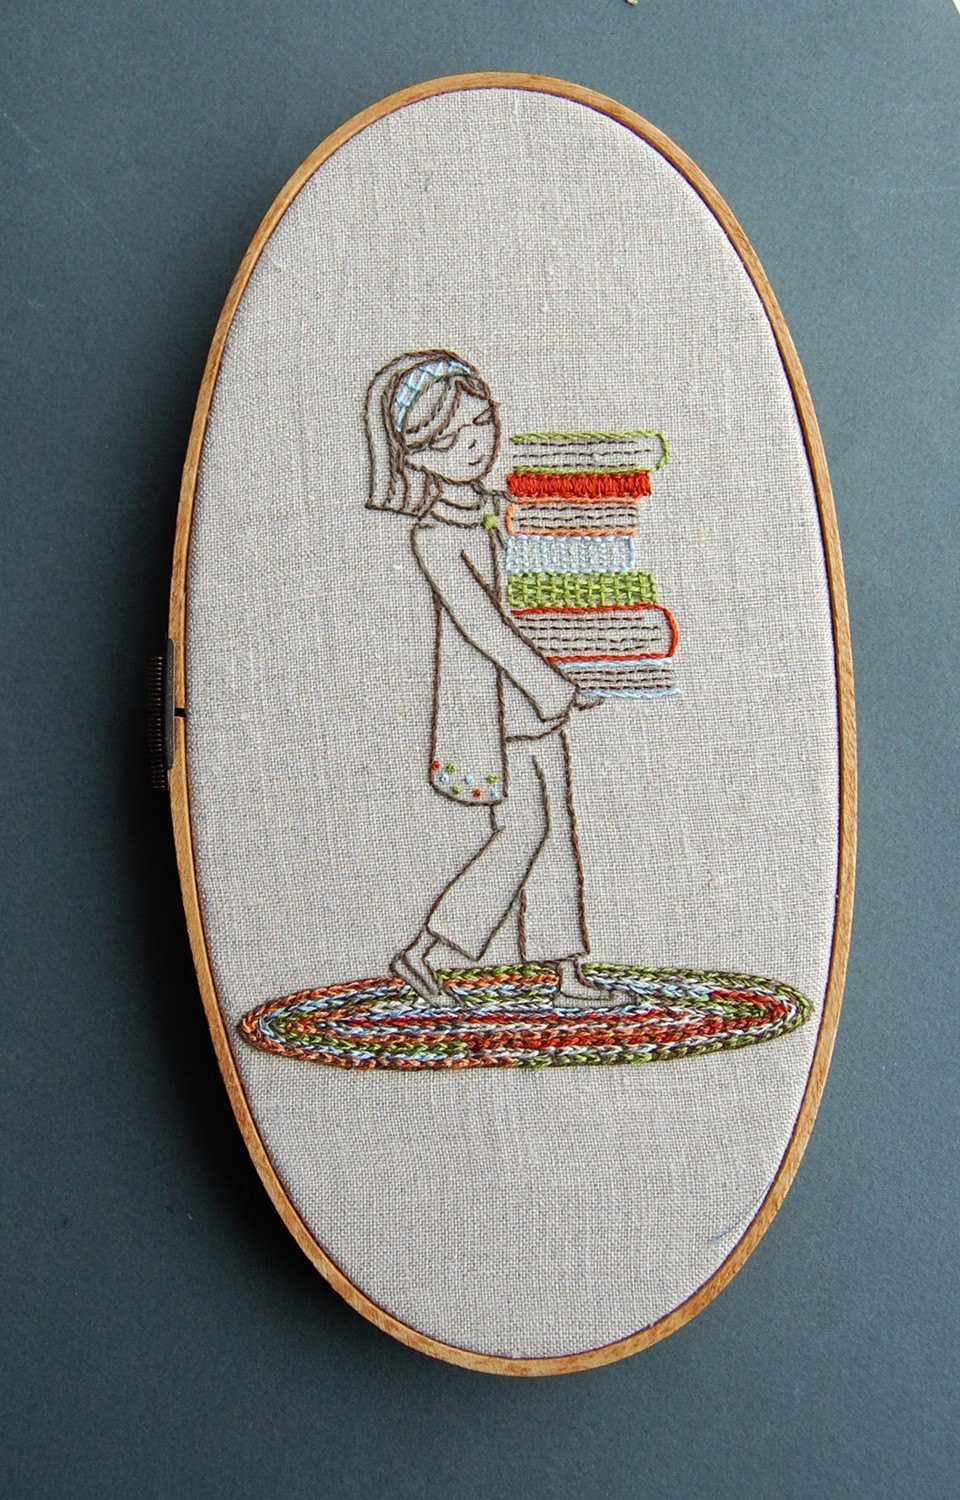 Hand Embroidery Patterns New Embroidery Patterns Booksmart Hand Embroidery Patterns Back Of Adorable 44 Pictures Hand Embroidery Patterns